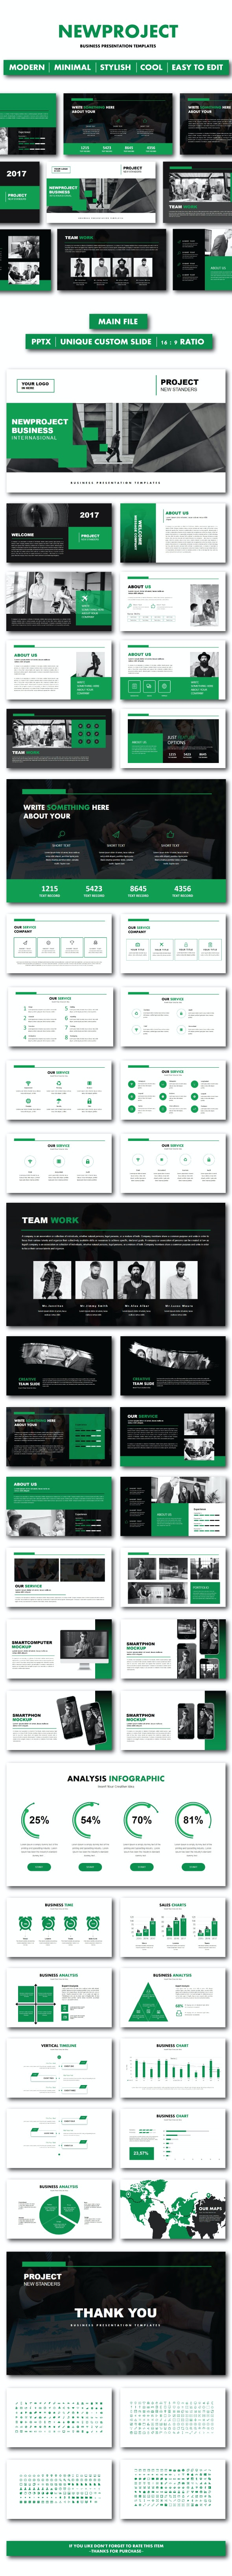 Newproject Business Templates - PowerPoint Templates Presentation Templates